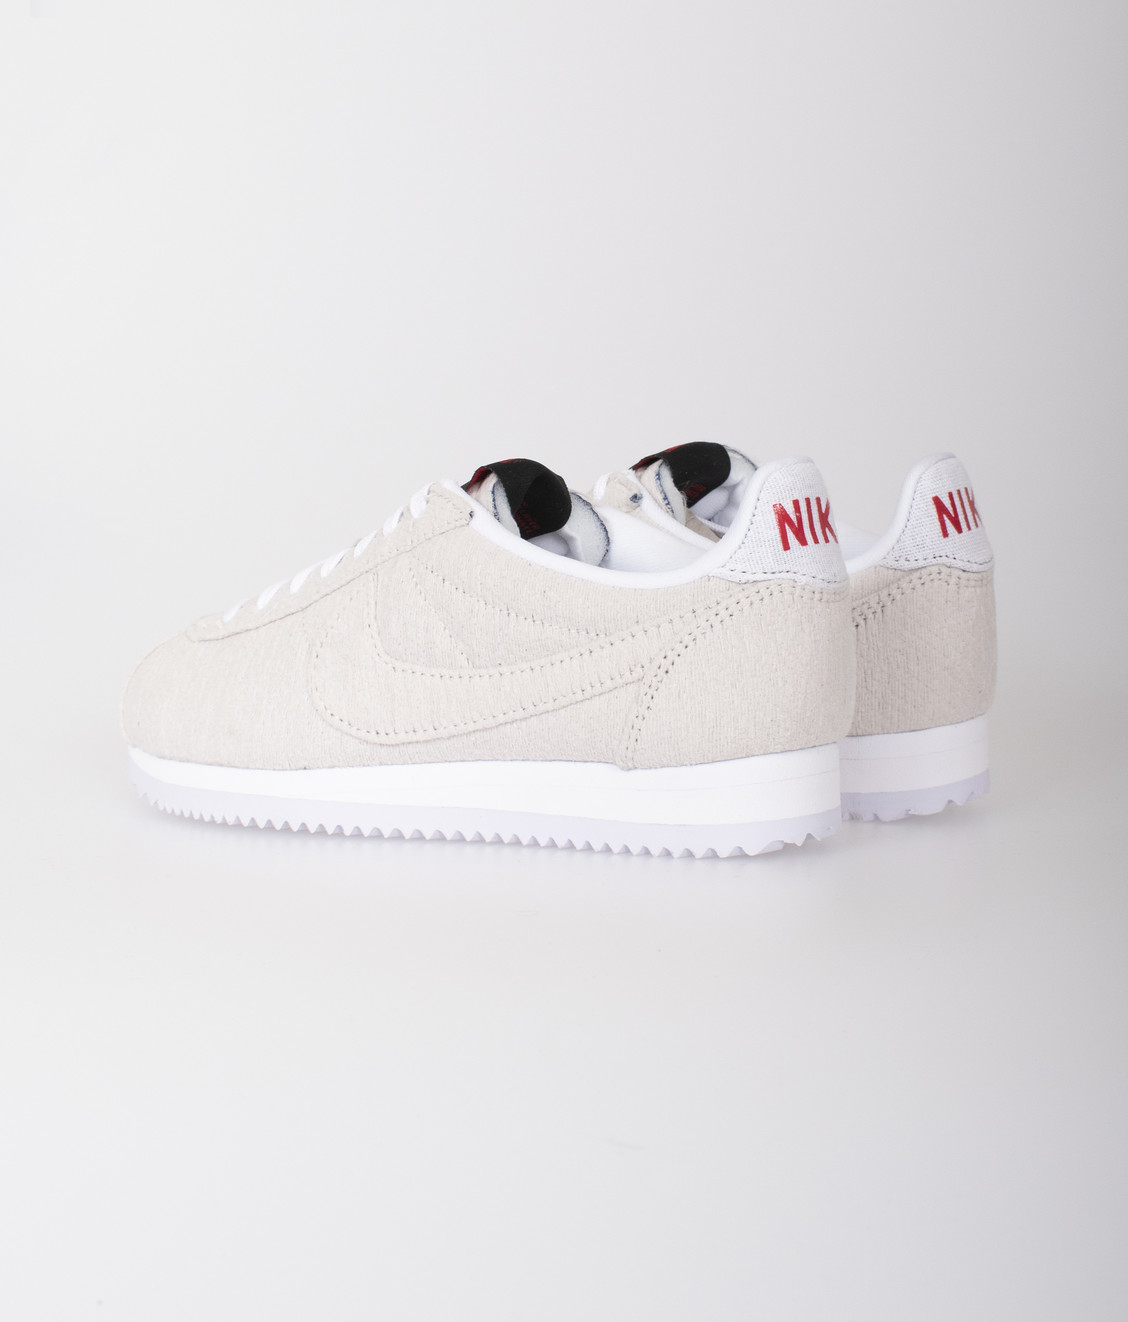 Nike Nike Cortez Stranger Things White Upside Down